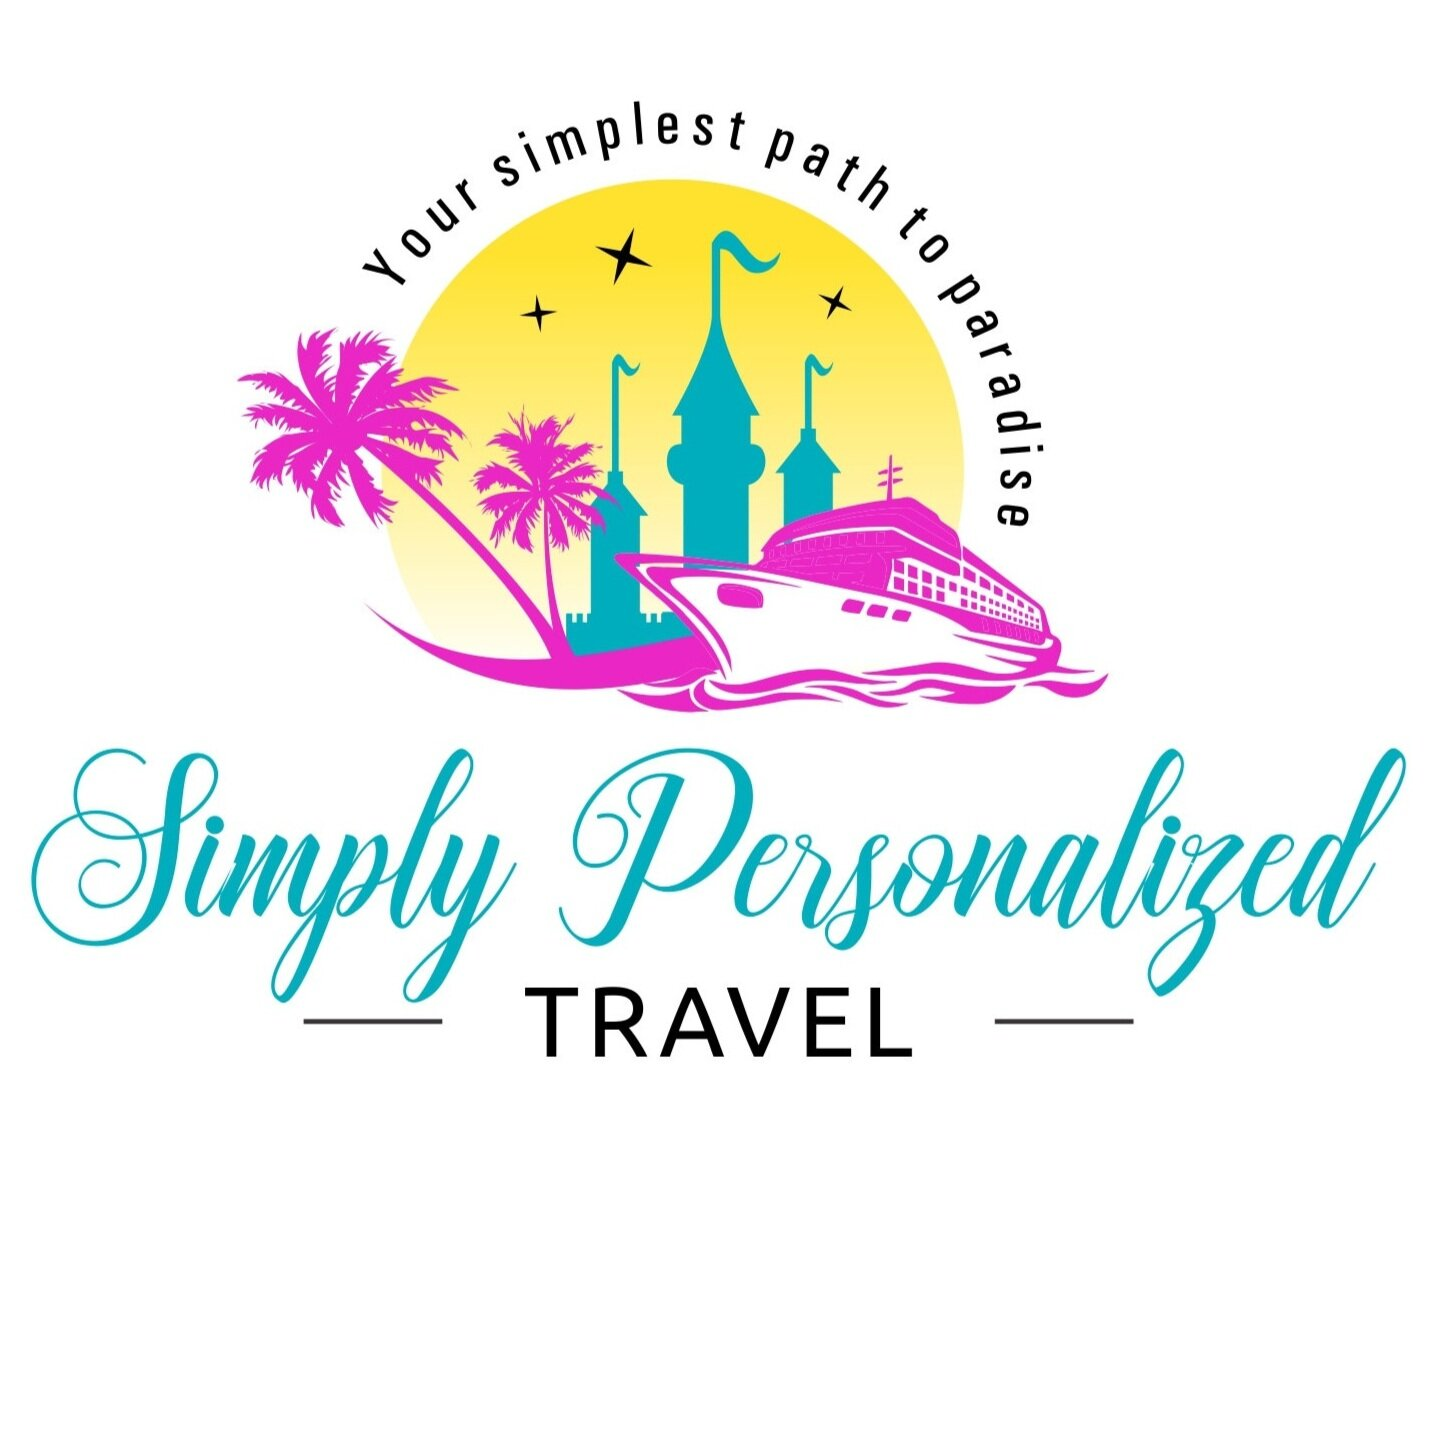 Simply Personalized Travel